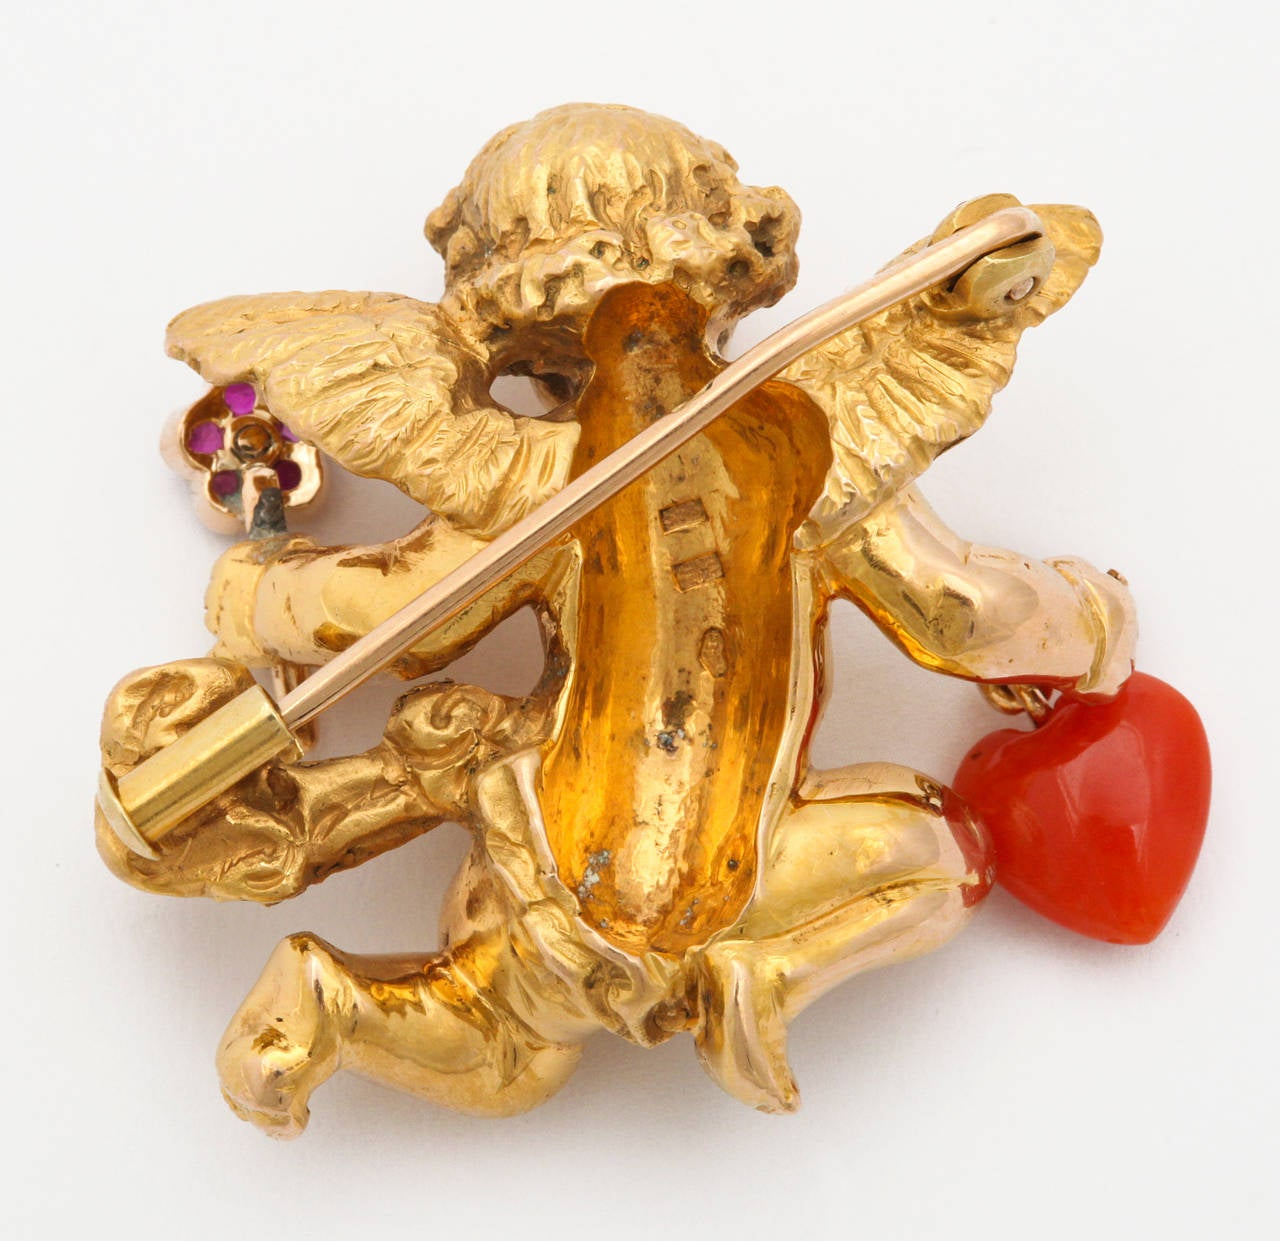 A charming and elegant figural brooch by the renown Viennese firm of Paltscho. A fine 18K gold representation of a cherub in flight, offering a ruby and diamond set flower in one hand, and a natural red coral heart in the other. Inspired by a